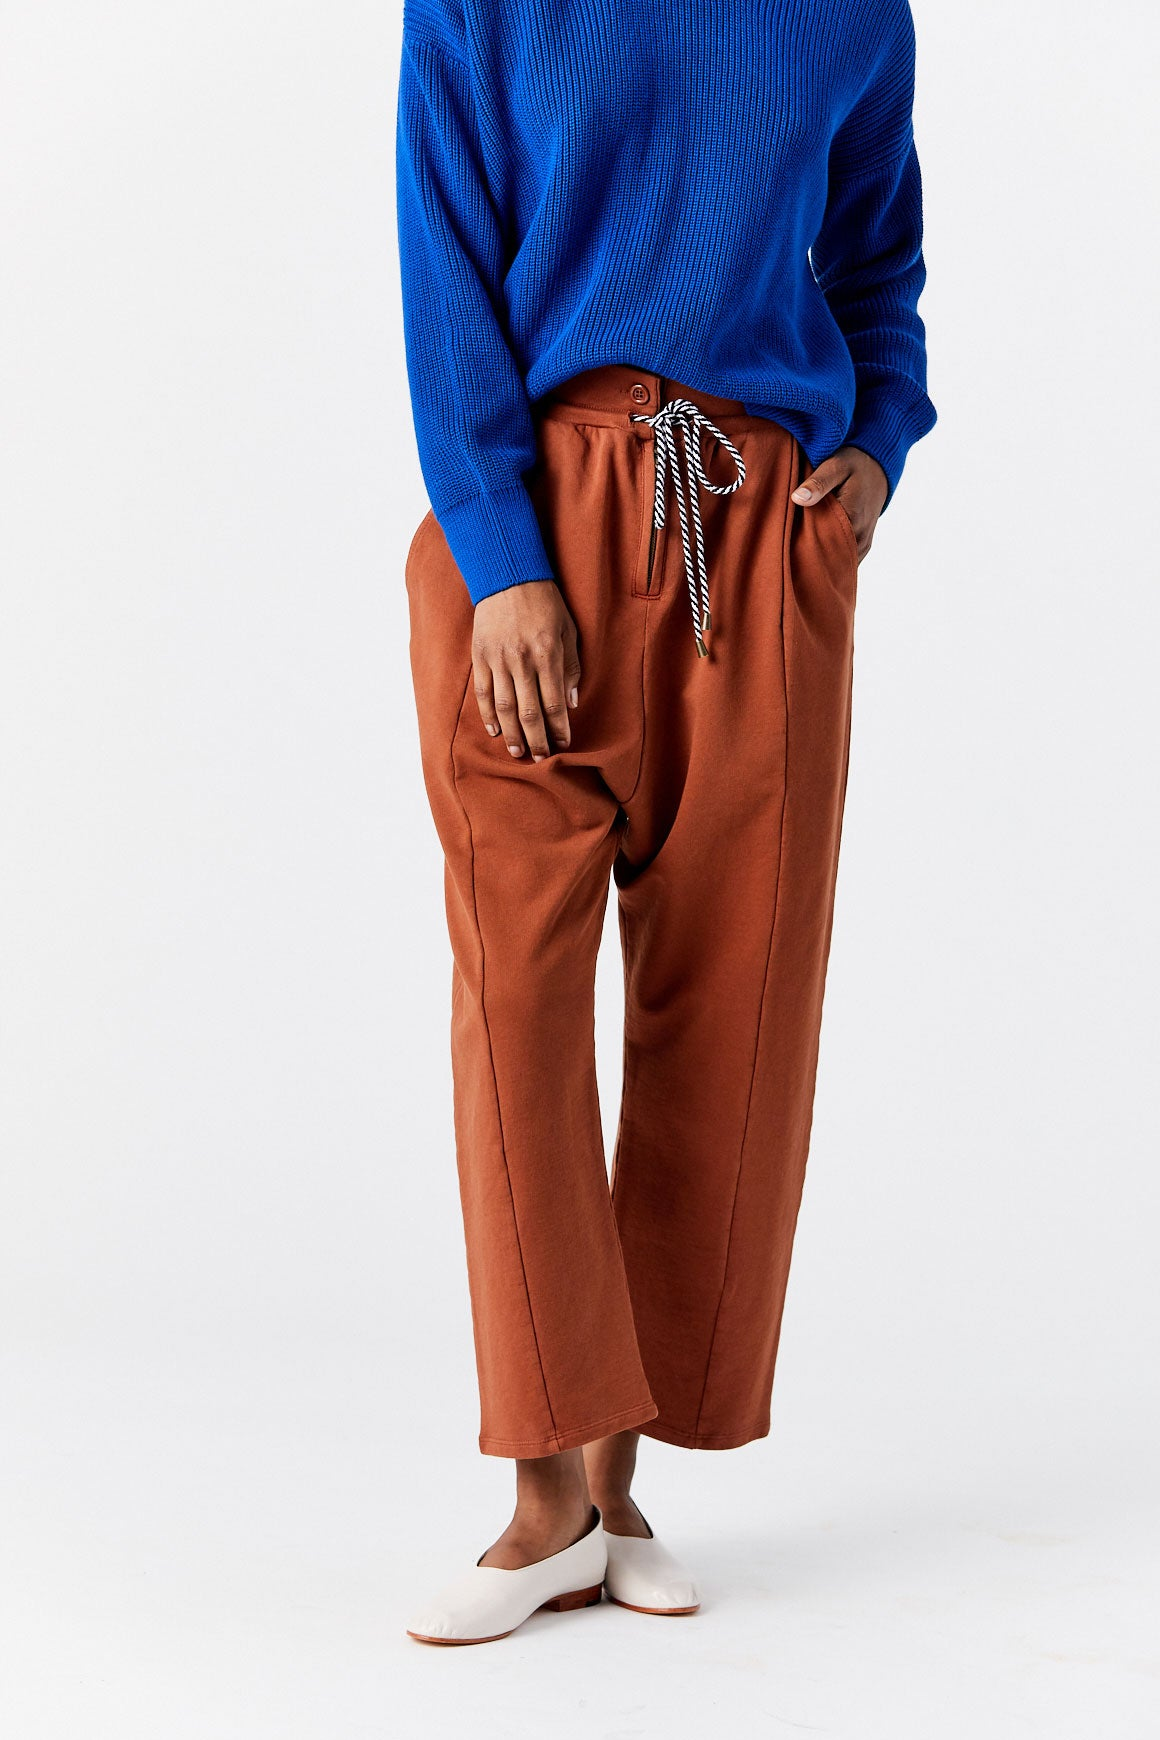 APIECE APART - Hera Sweat Pant, Copper